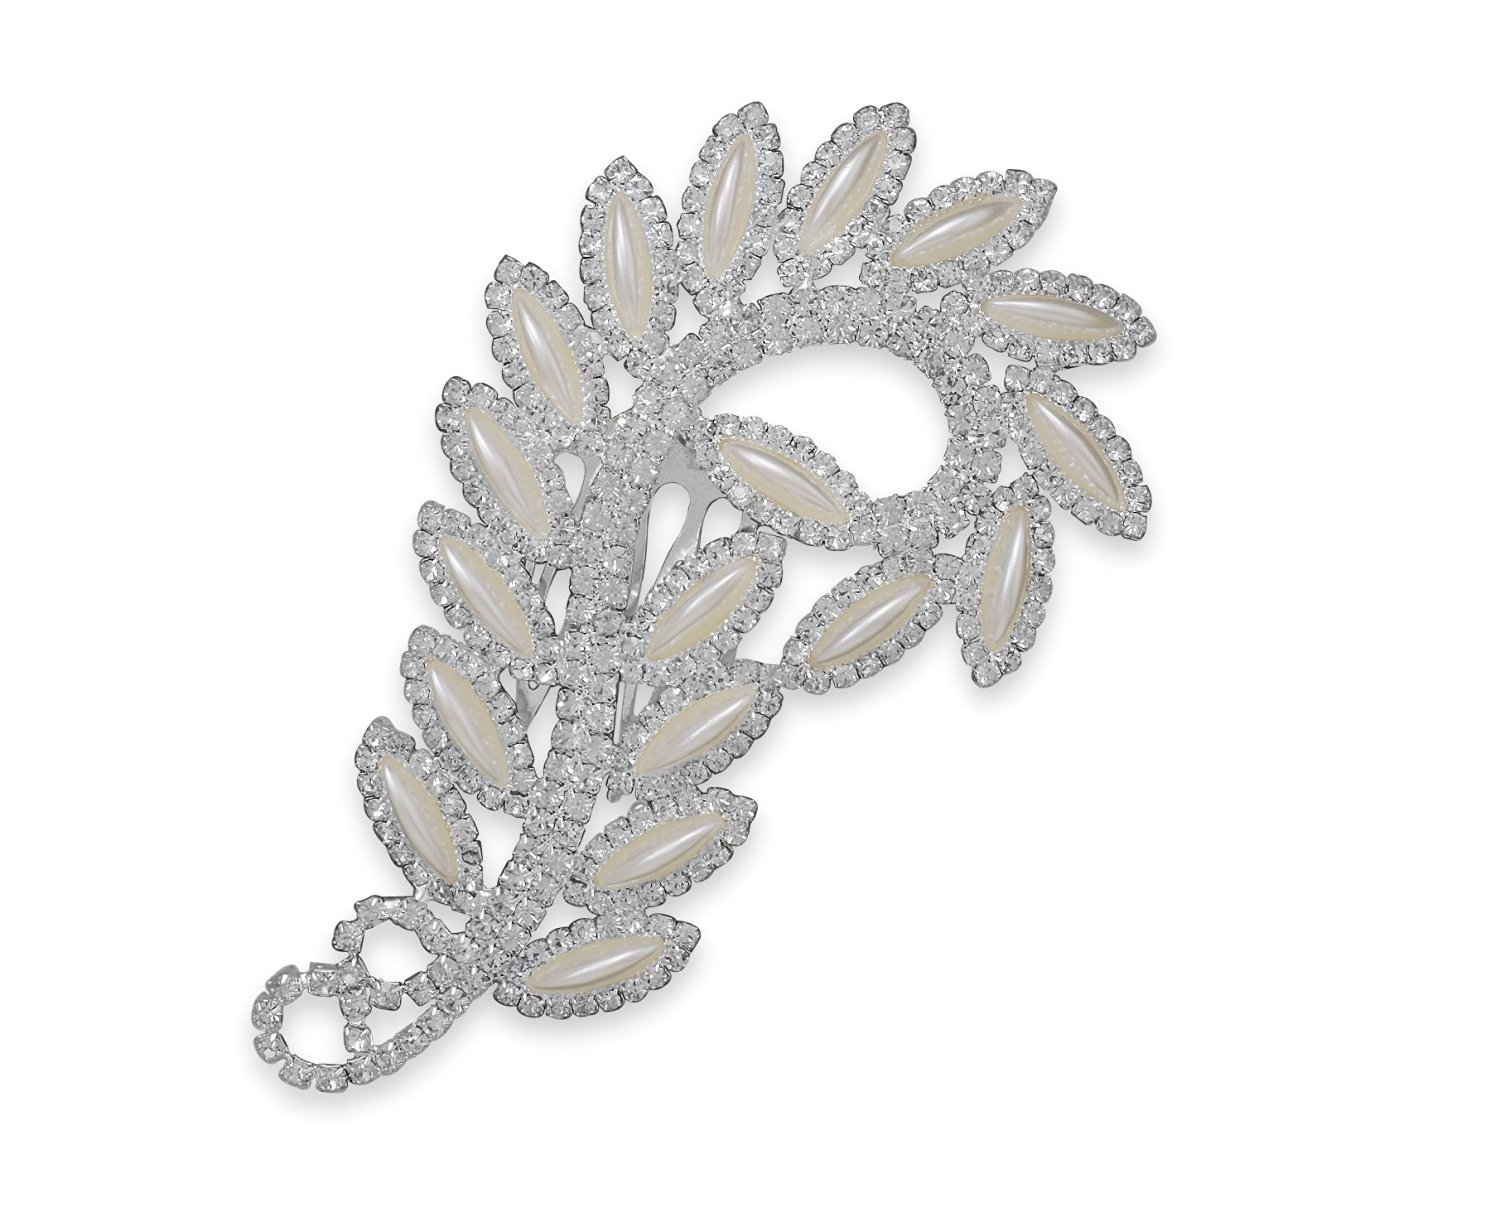 4-3/4 inch Silver Tone Fashion Hair Comb ONLY, 3mm Clear Crystals, 3.5x15mm Faux Mother of Pearl